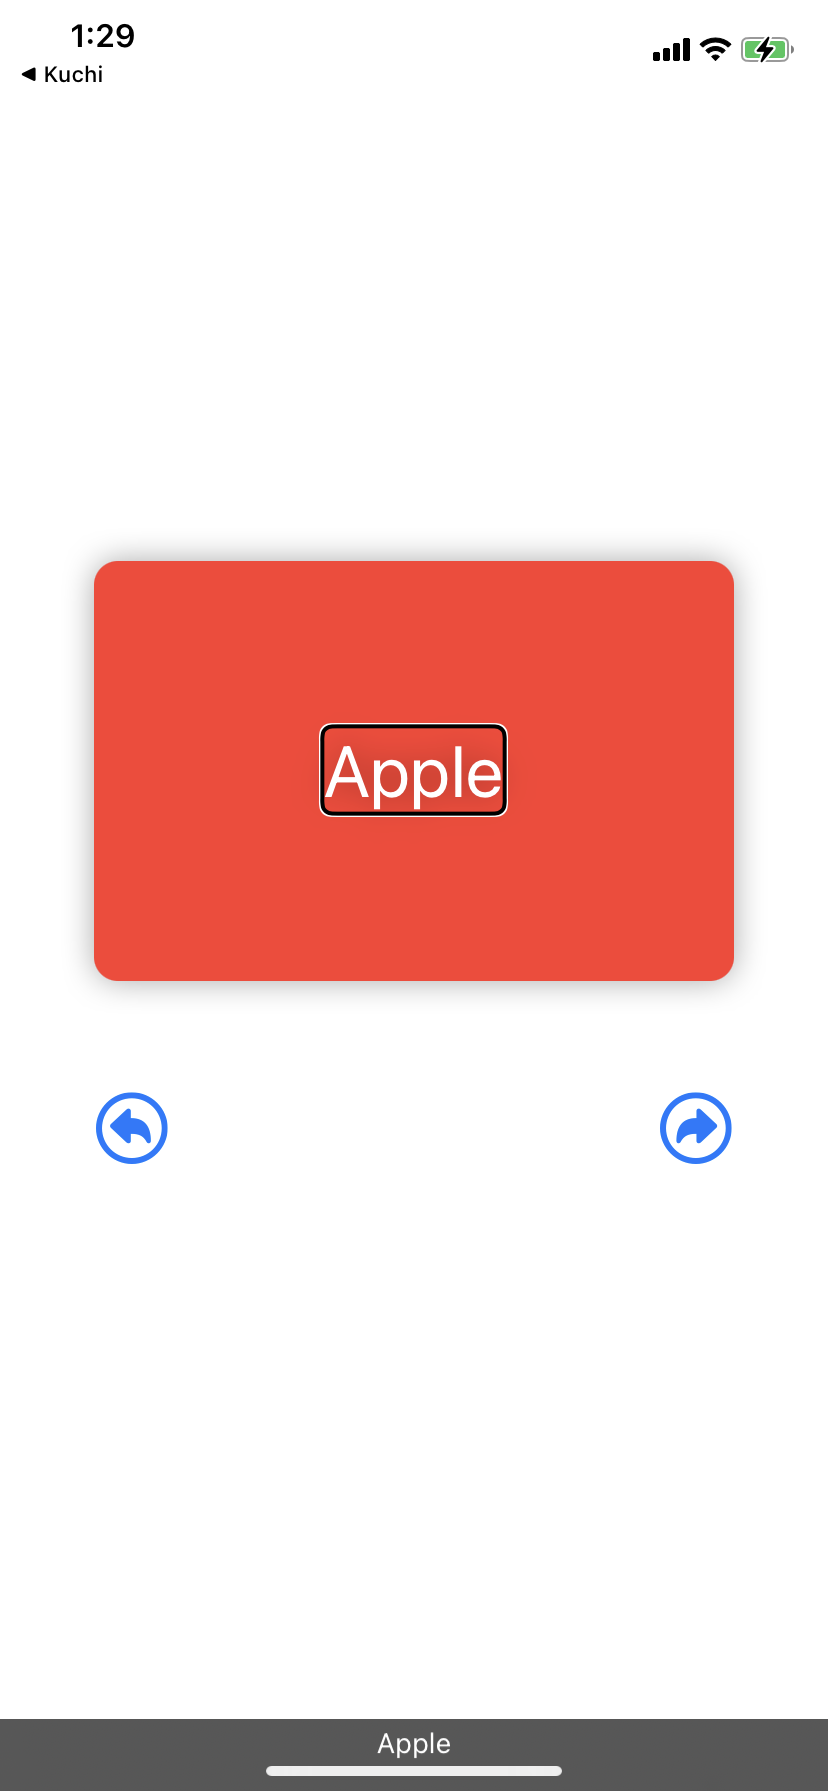 Buttons to manually invoke drag gestures